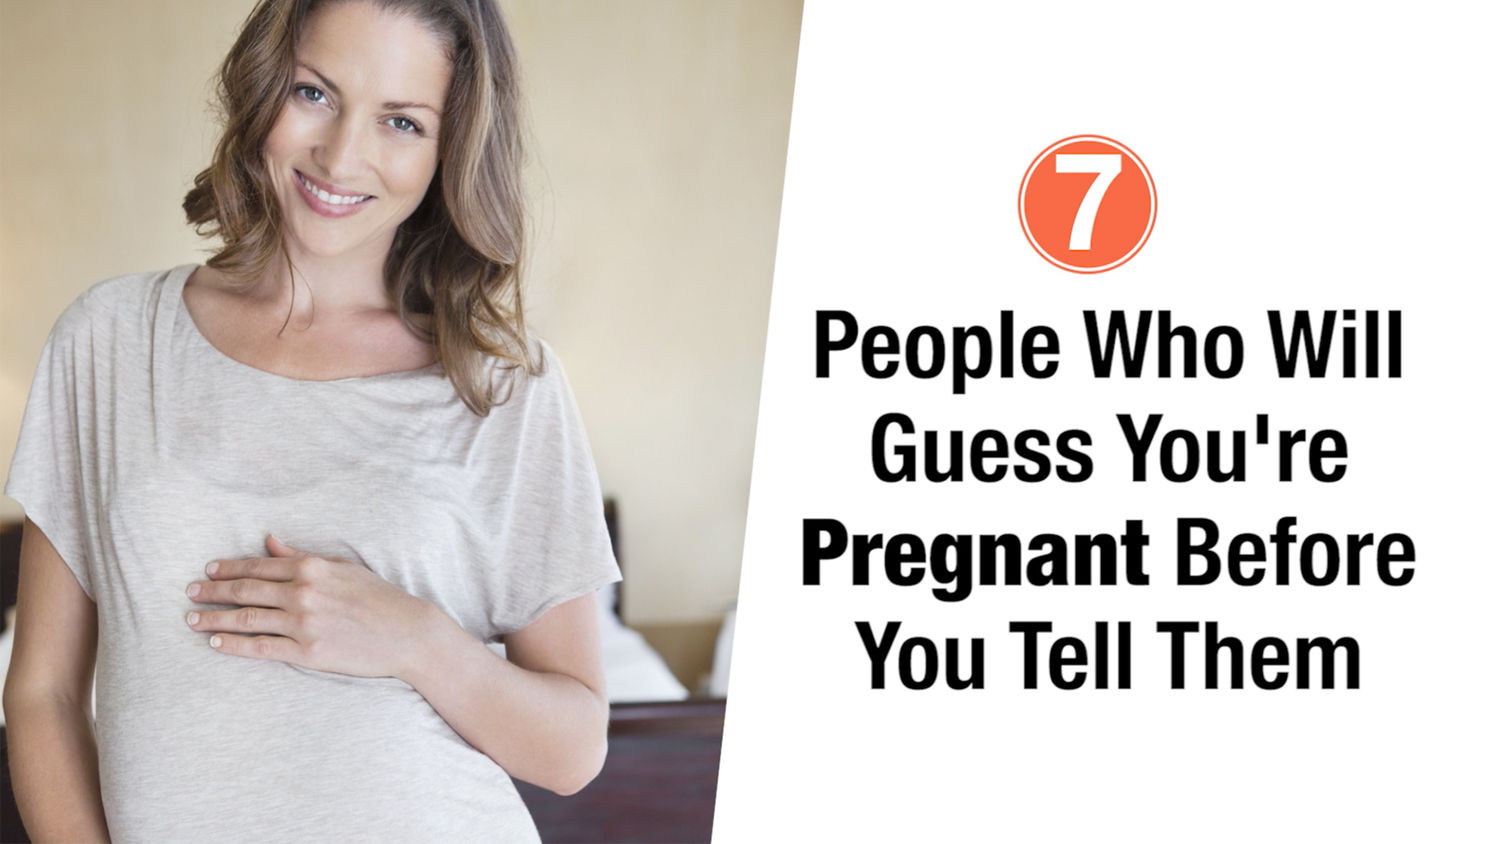 7 People Who Will Guess You're Pregnant Before You Tell